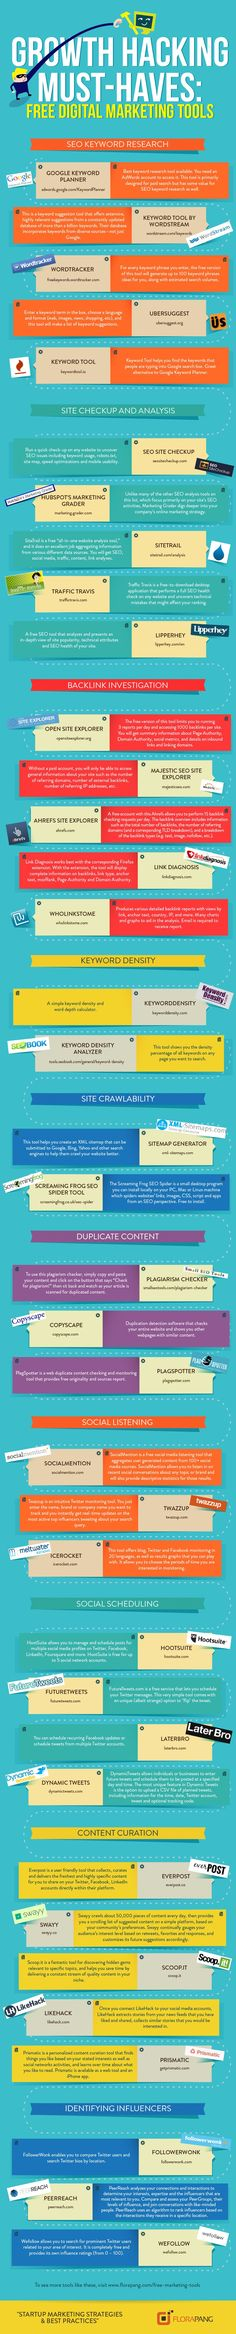 Growth Hacking Must-Haves: Free Digital Marketing Tools - #infographic